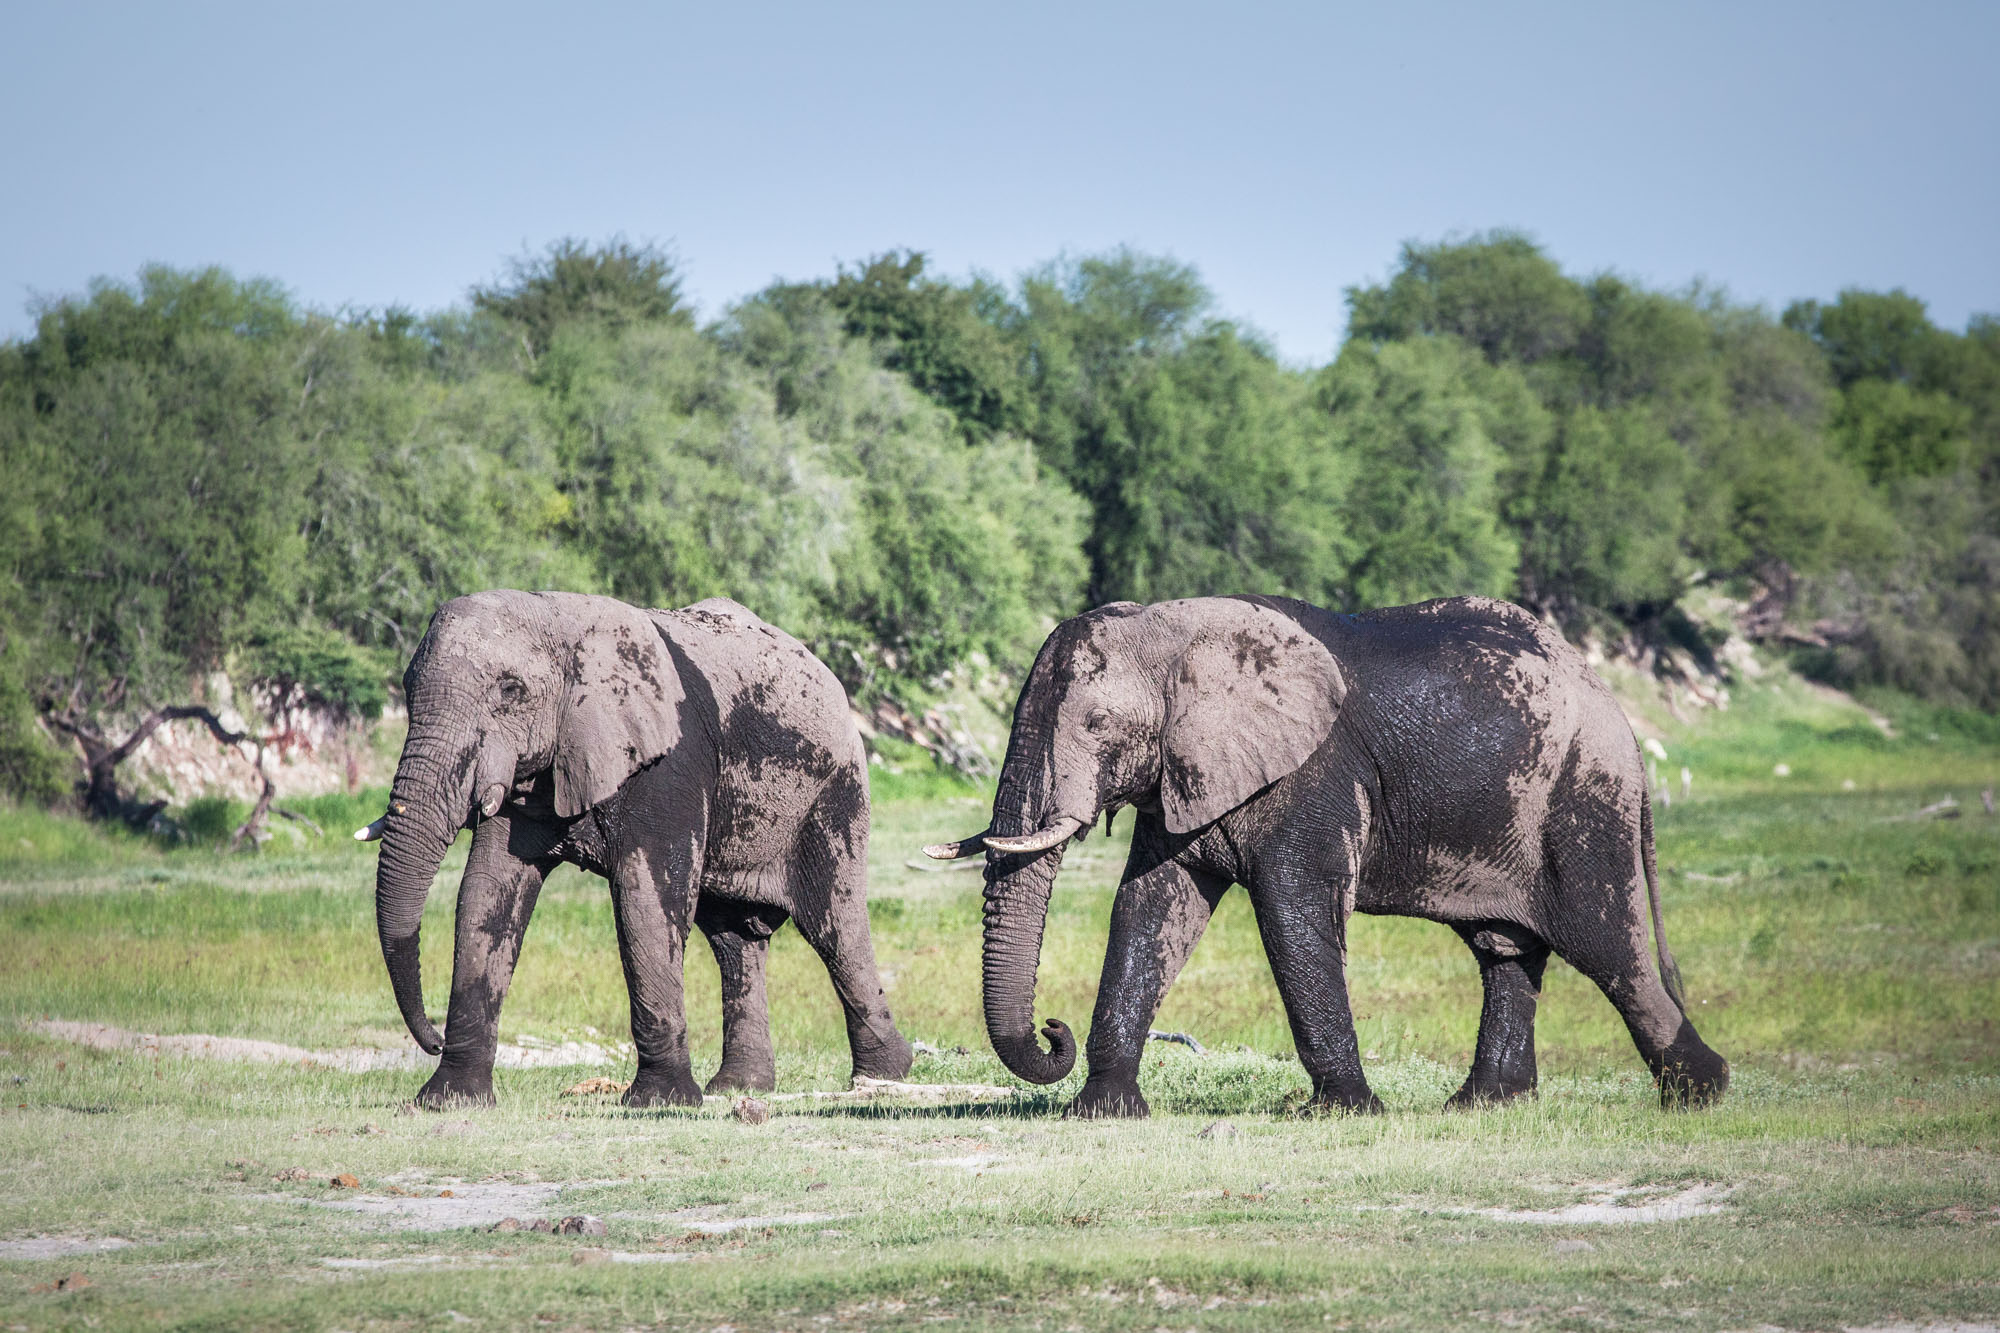 These two bull elephants were walking within a kilometre or two of Moreomaoto Village.